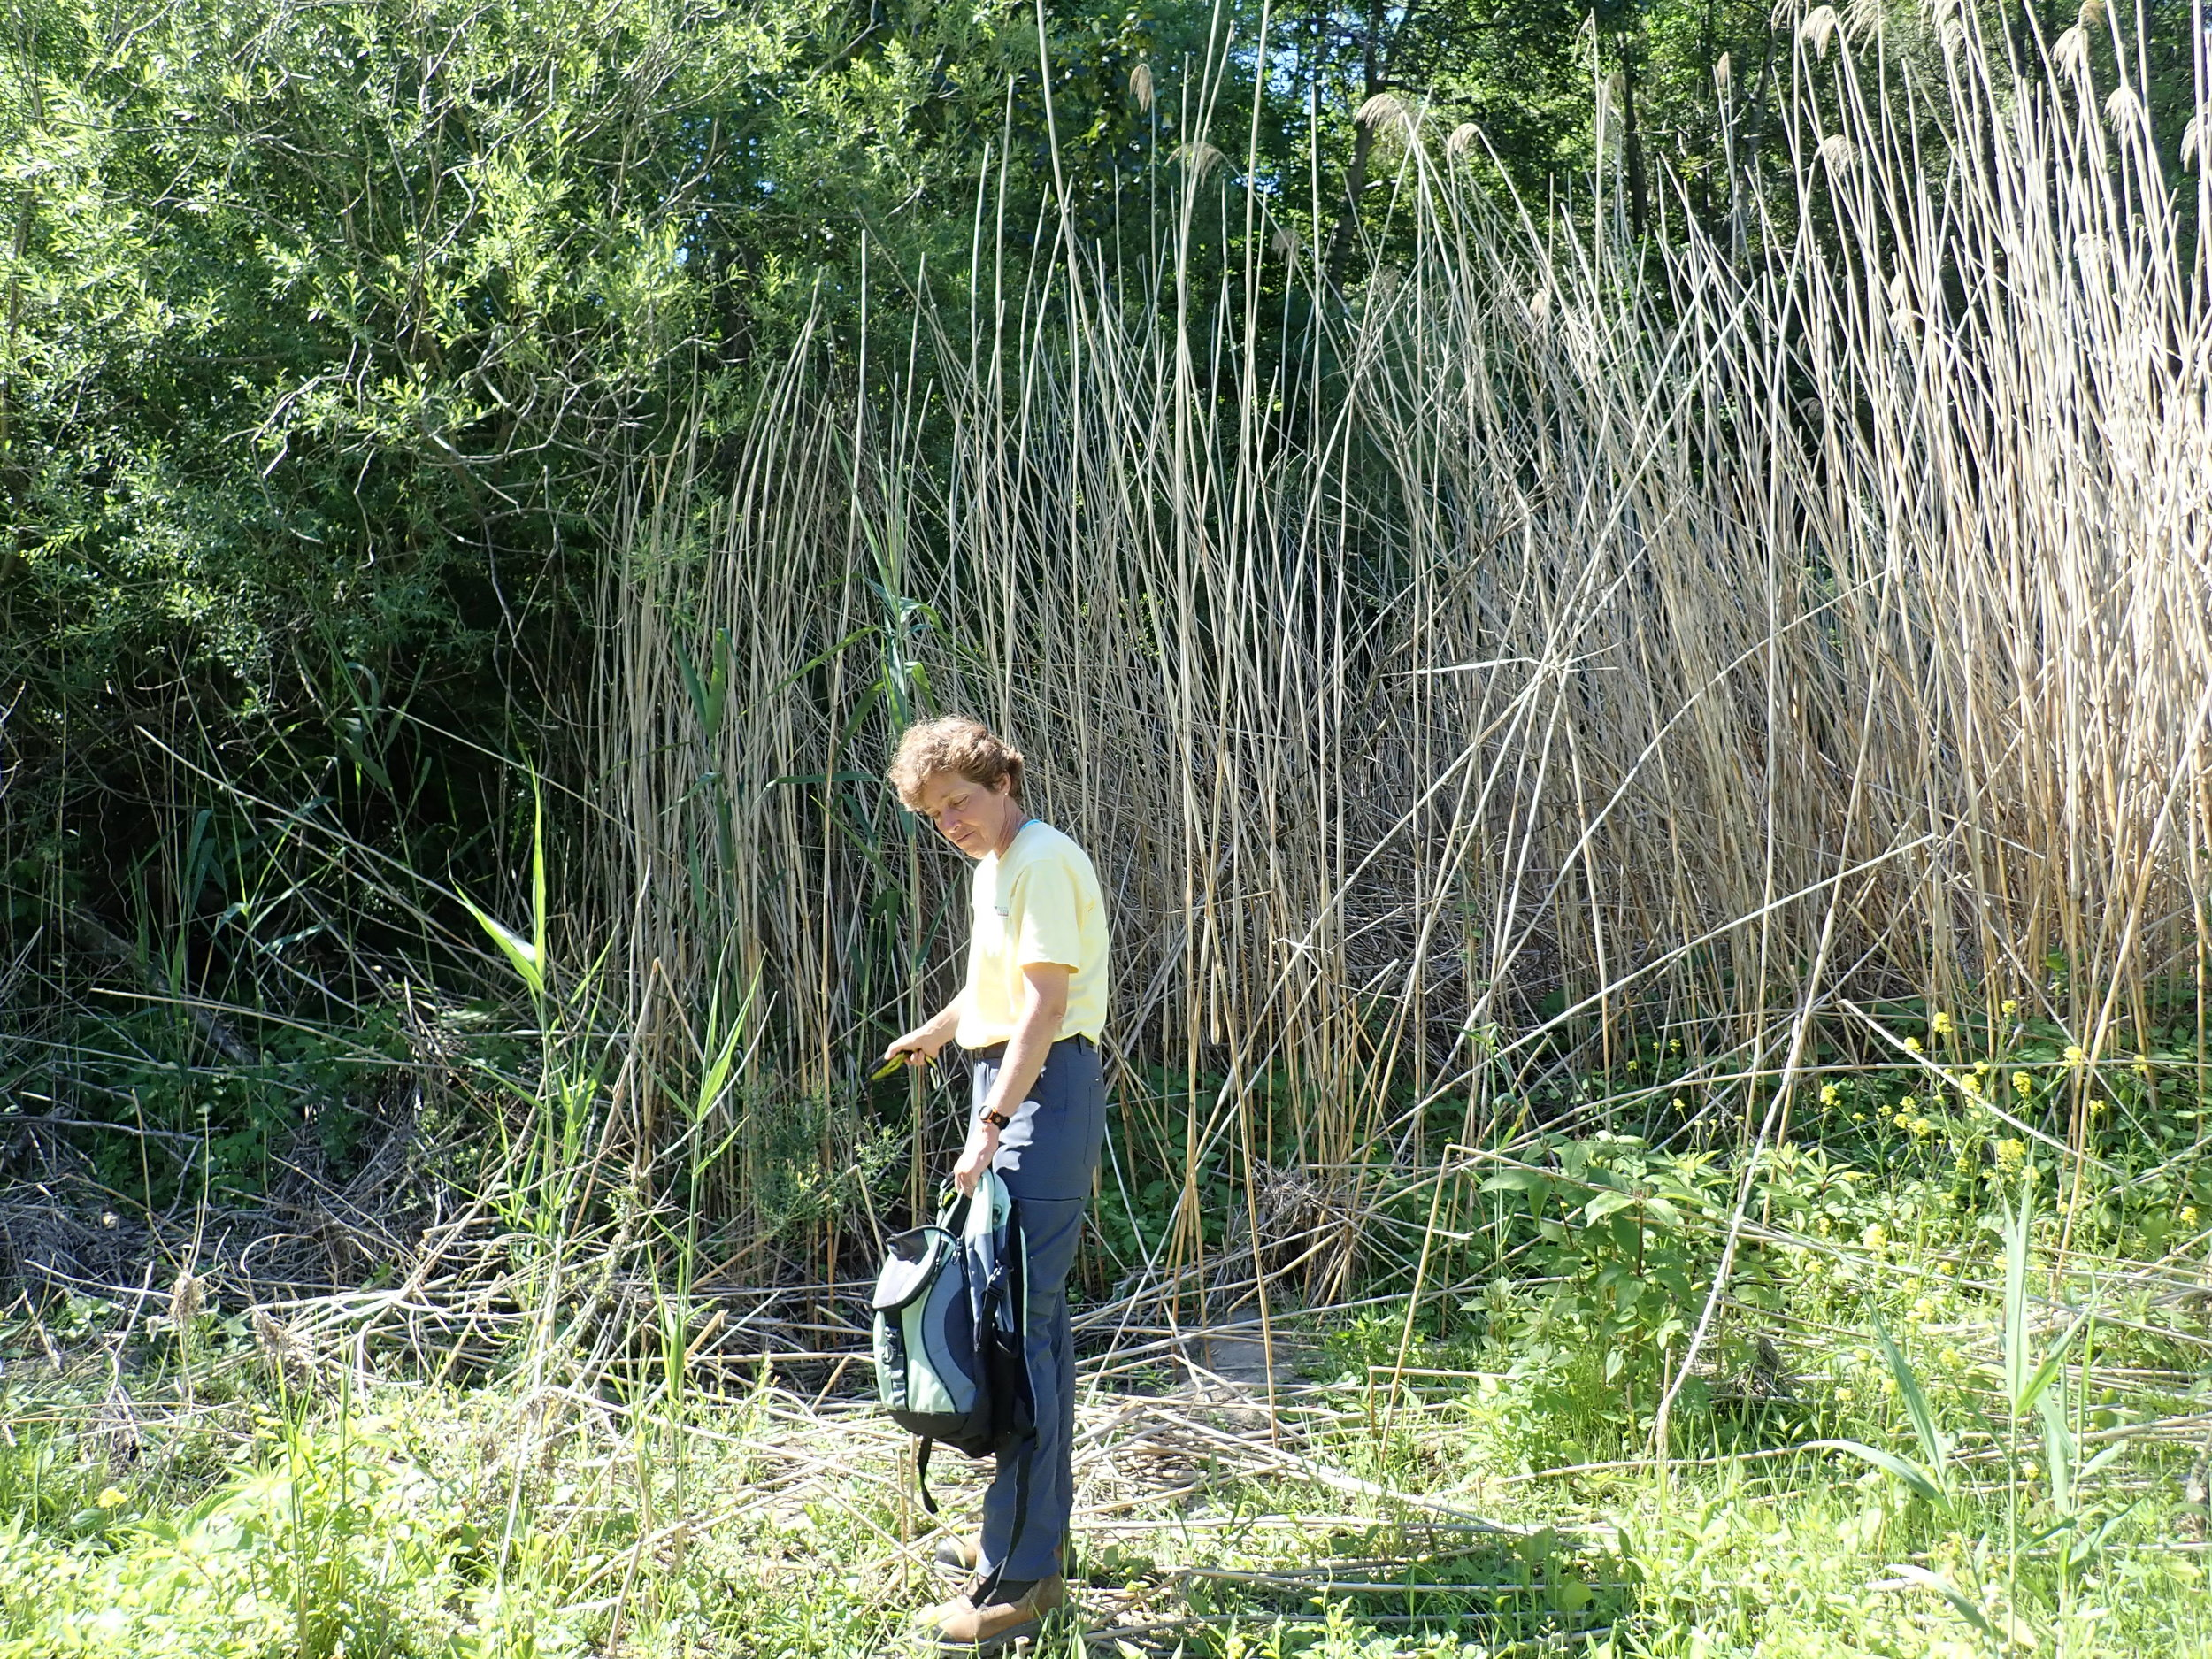 Dr. Gilbert surveying a site previously sprayed with herbicide.